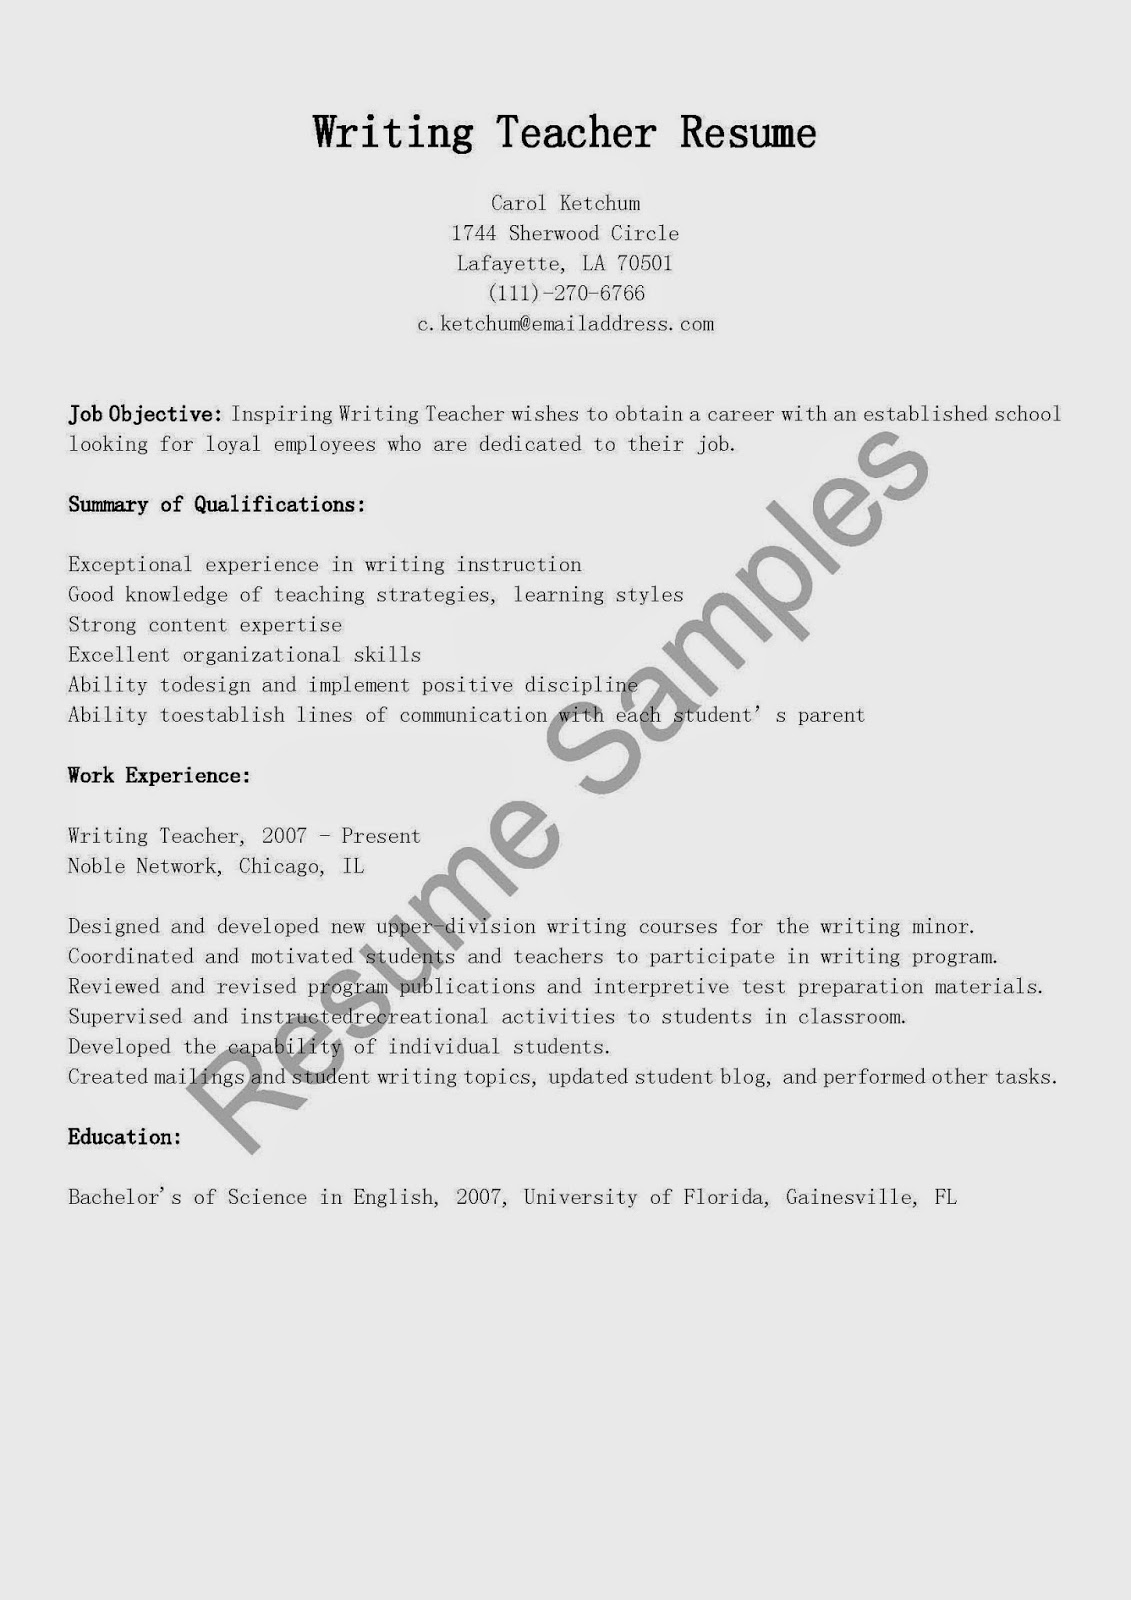 Best resume writing services chicago 4 teachers